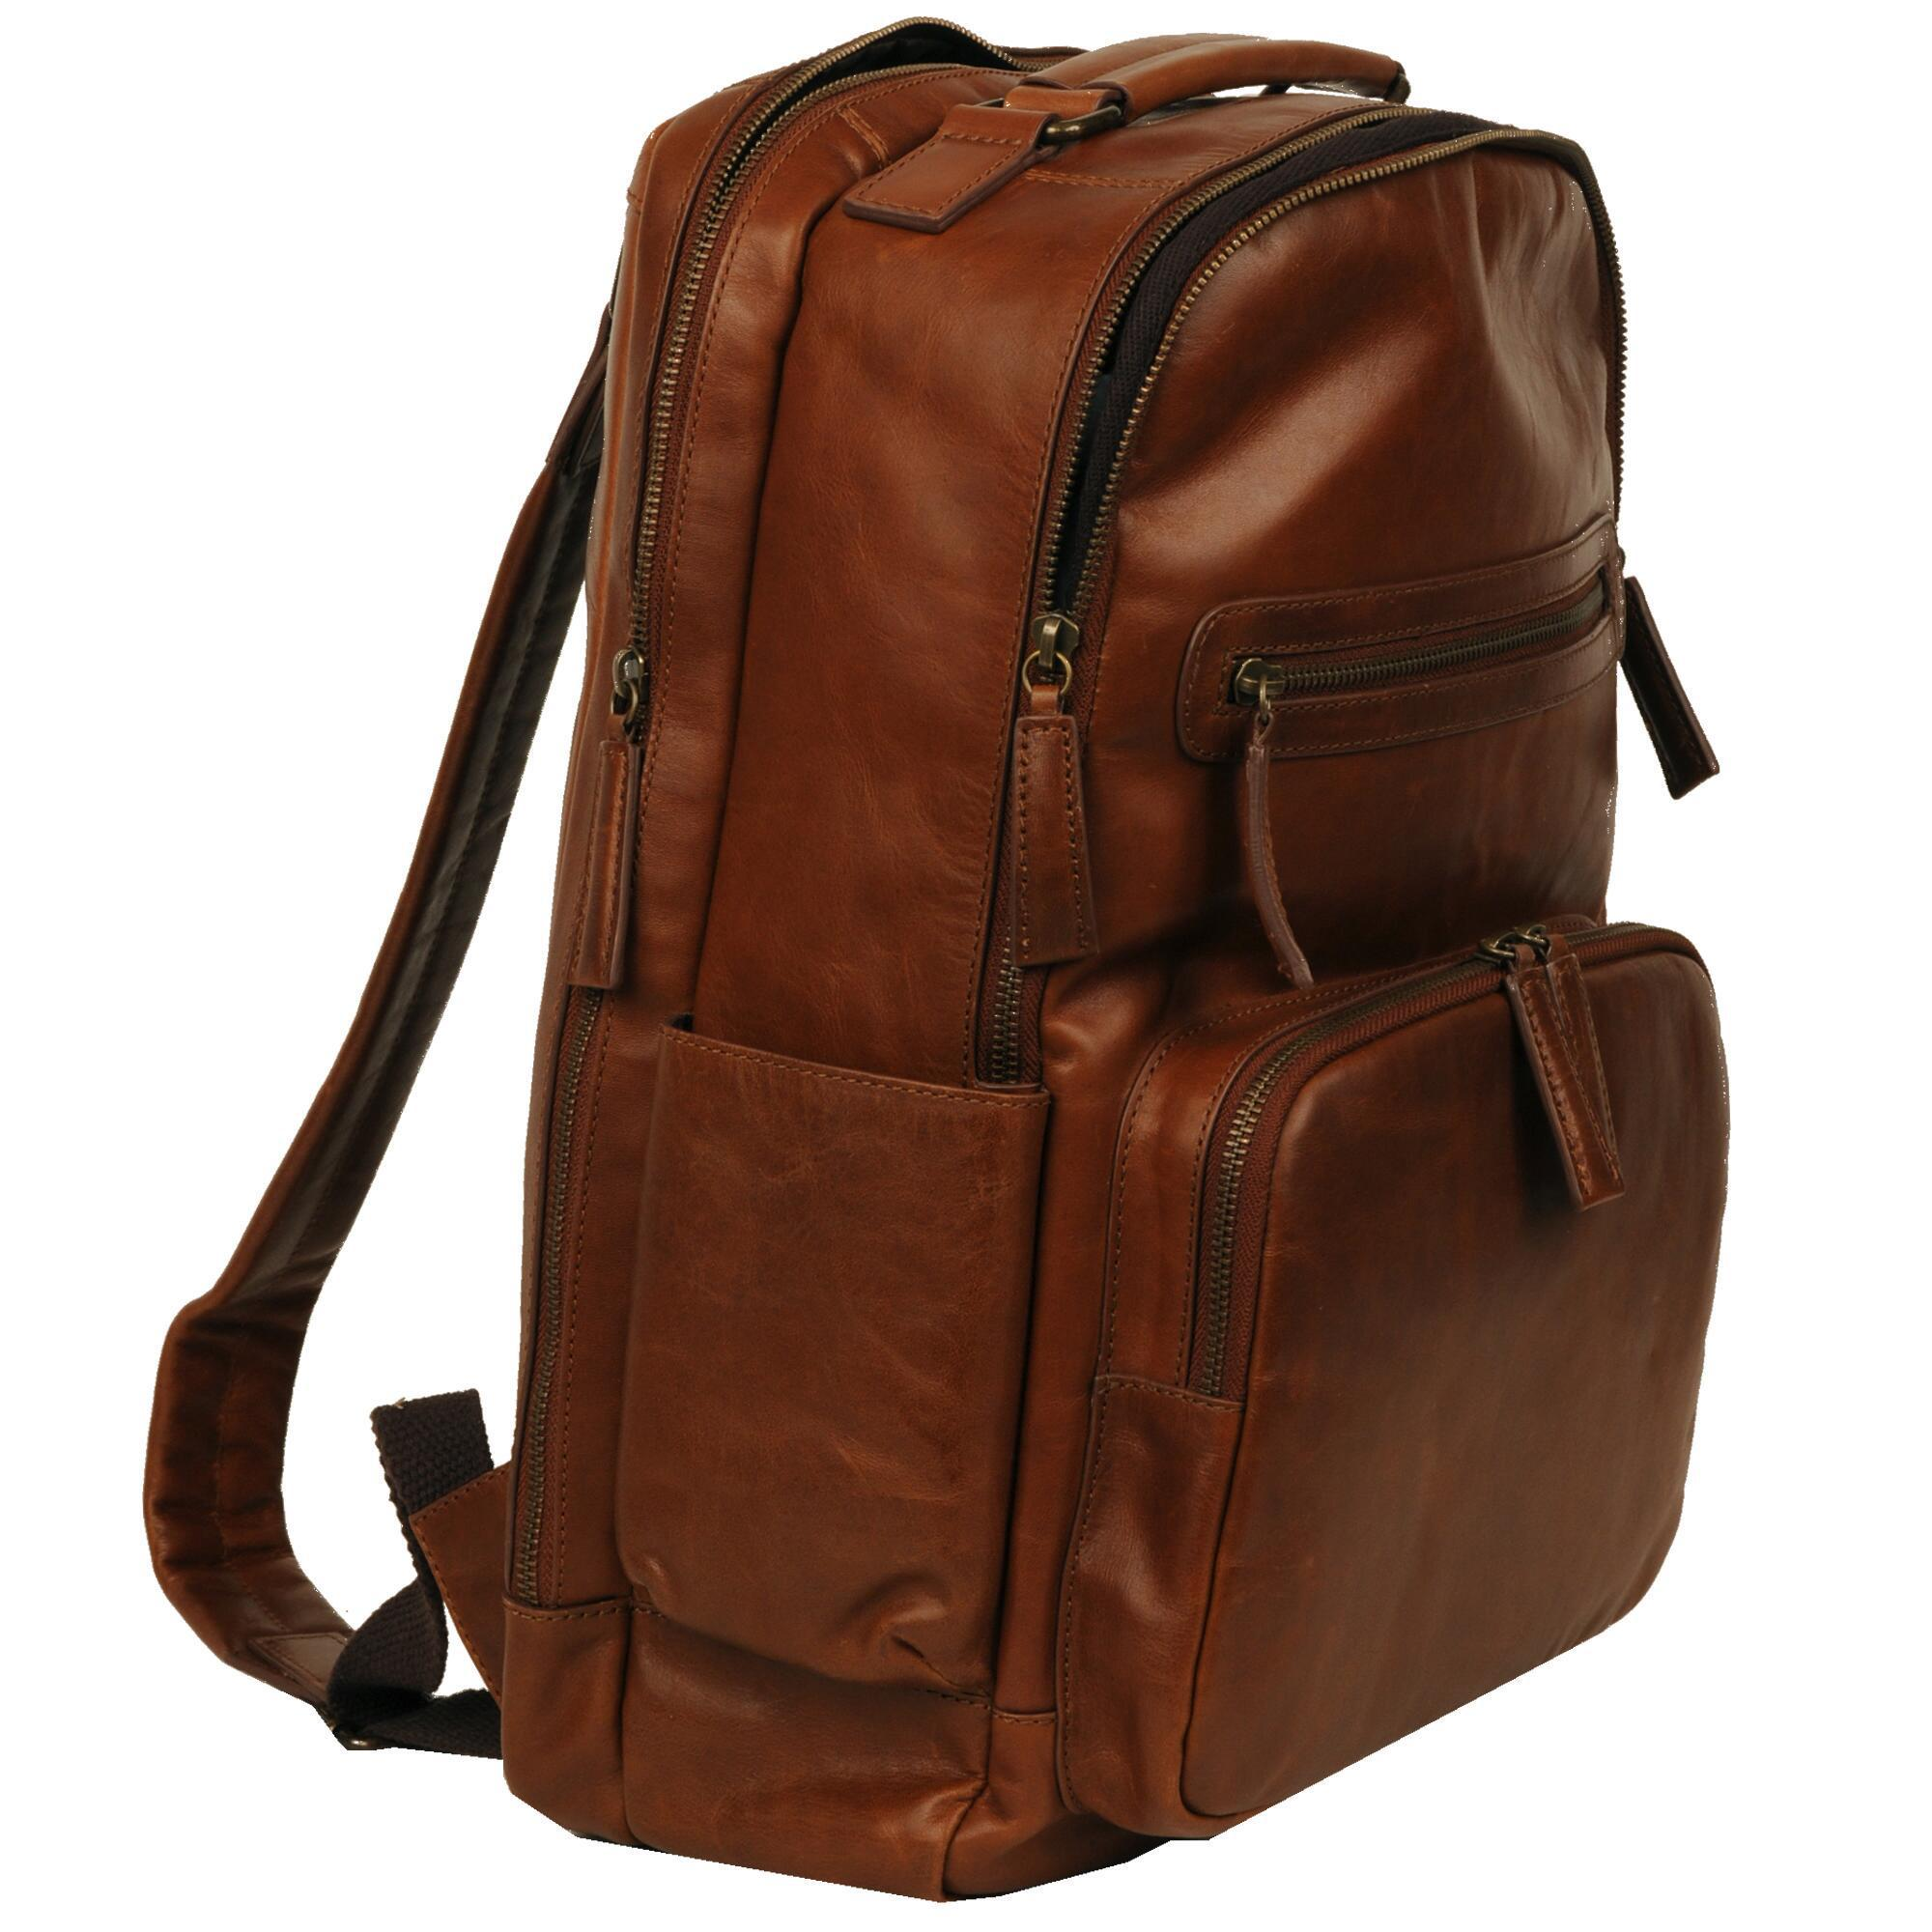 bcc1bcc7c1d7 Wilsons Leather - Brown Vintage Leather Crunch Backpack for Men - Lyst.  View fullscreen